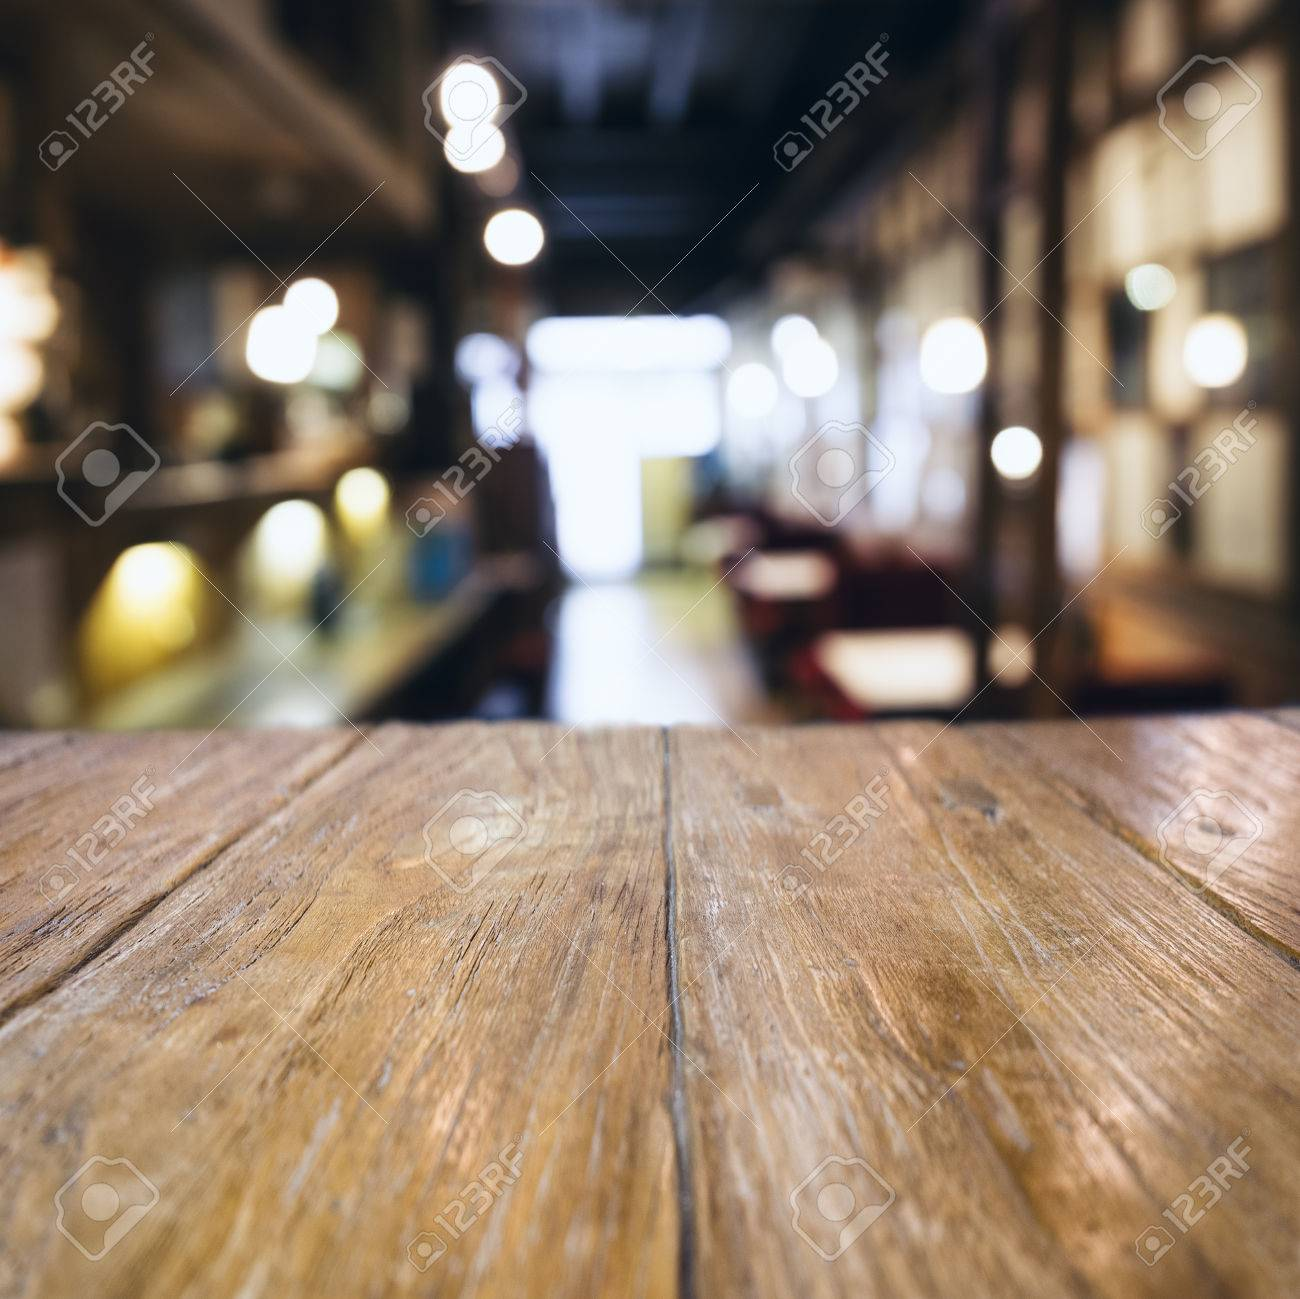 restaurant table top lighting. Stock Photo - Table Top Counter Bar Blurred Cafe Restaurant Background Lighting B